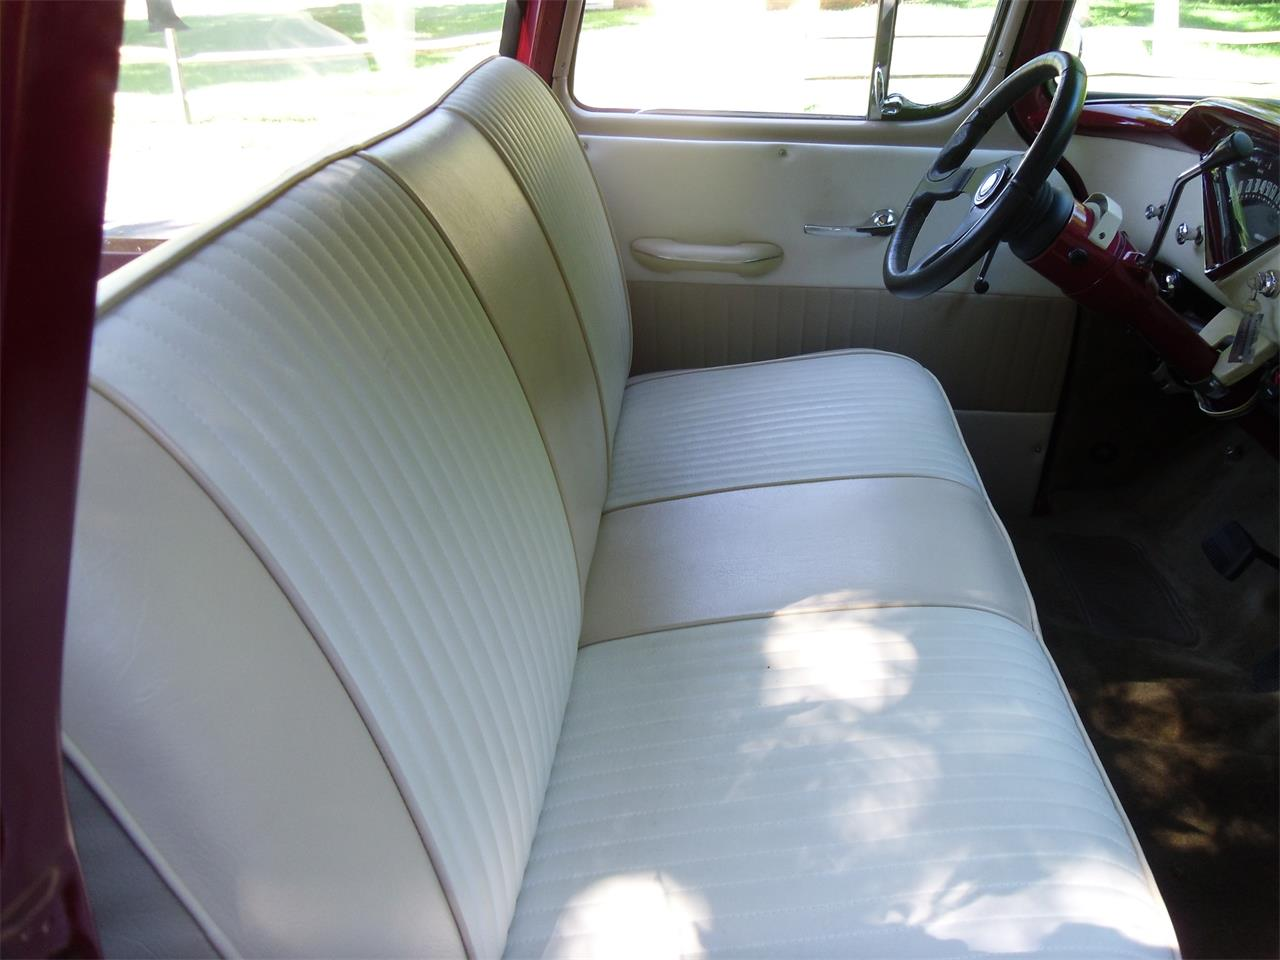 Large Picture of Classic '57 Chevrolet 3100 located in Virginia Offered by a Private Seller - F250